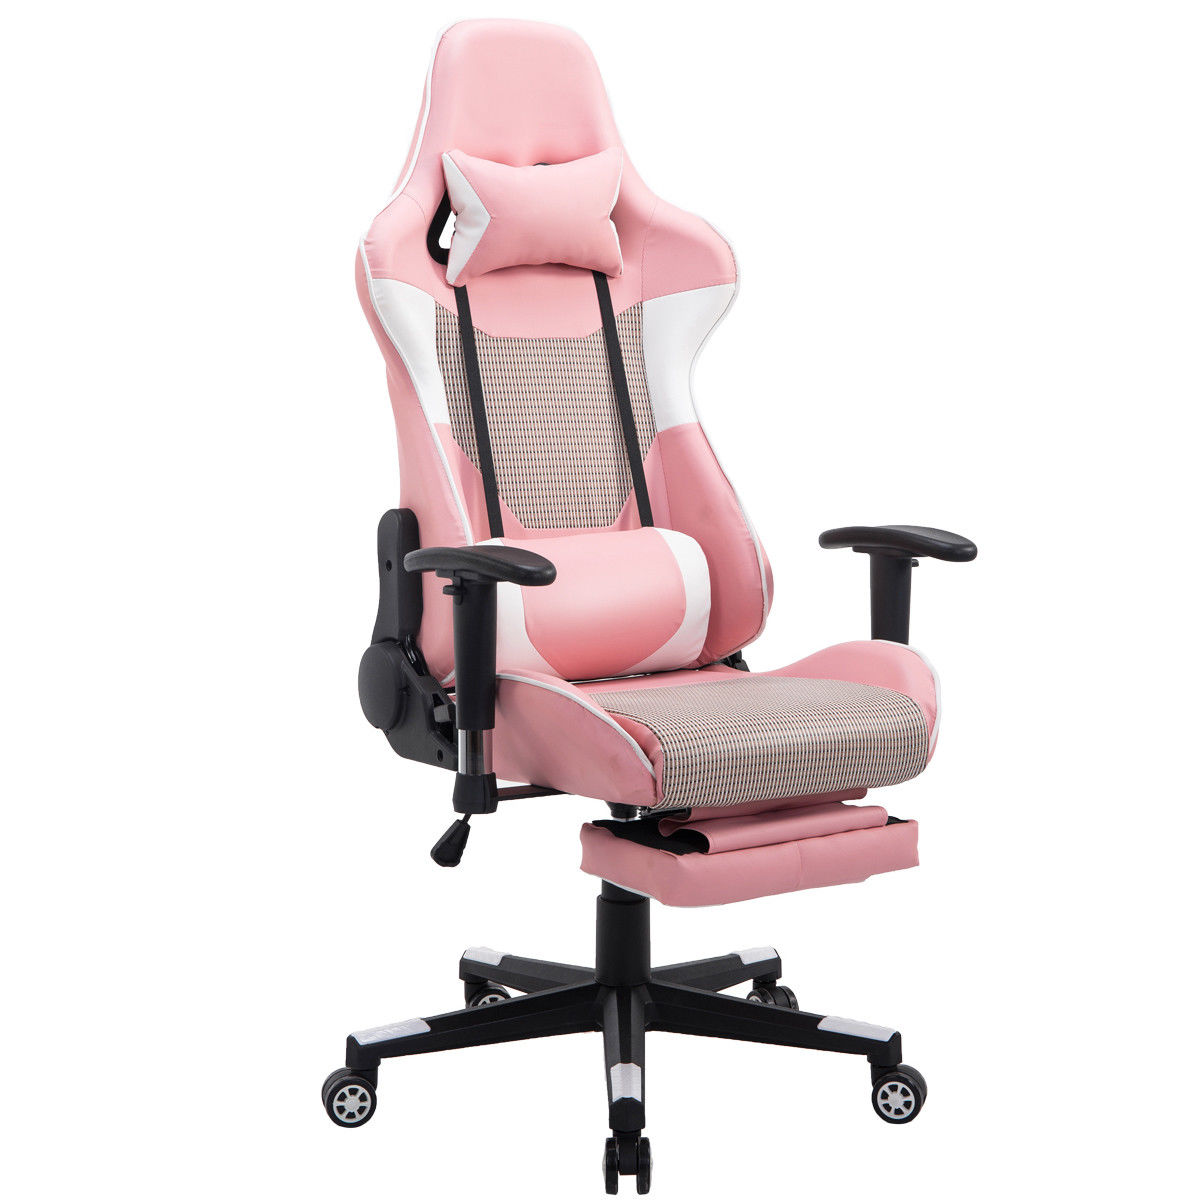 Delicieux Costway Ergonomic Gaming Chair High Back Racing Office Chair W/Lumbar  Support U0026 Footrest